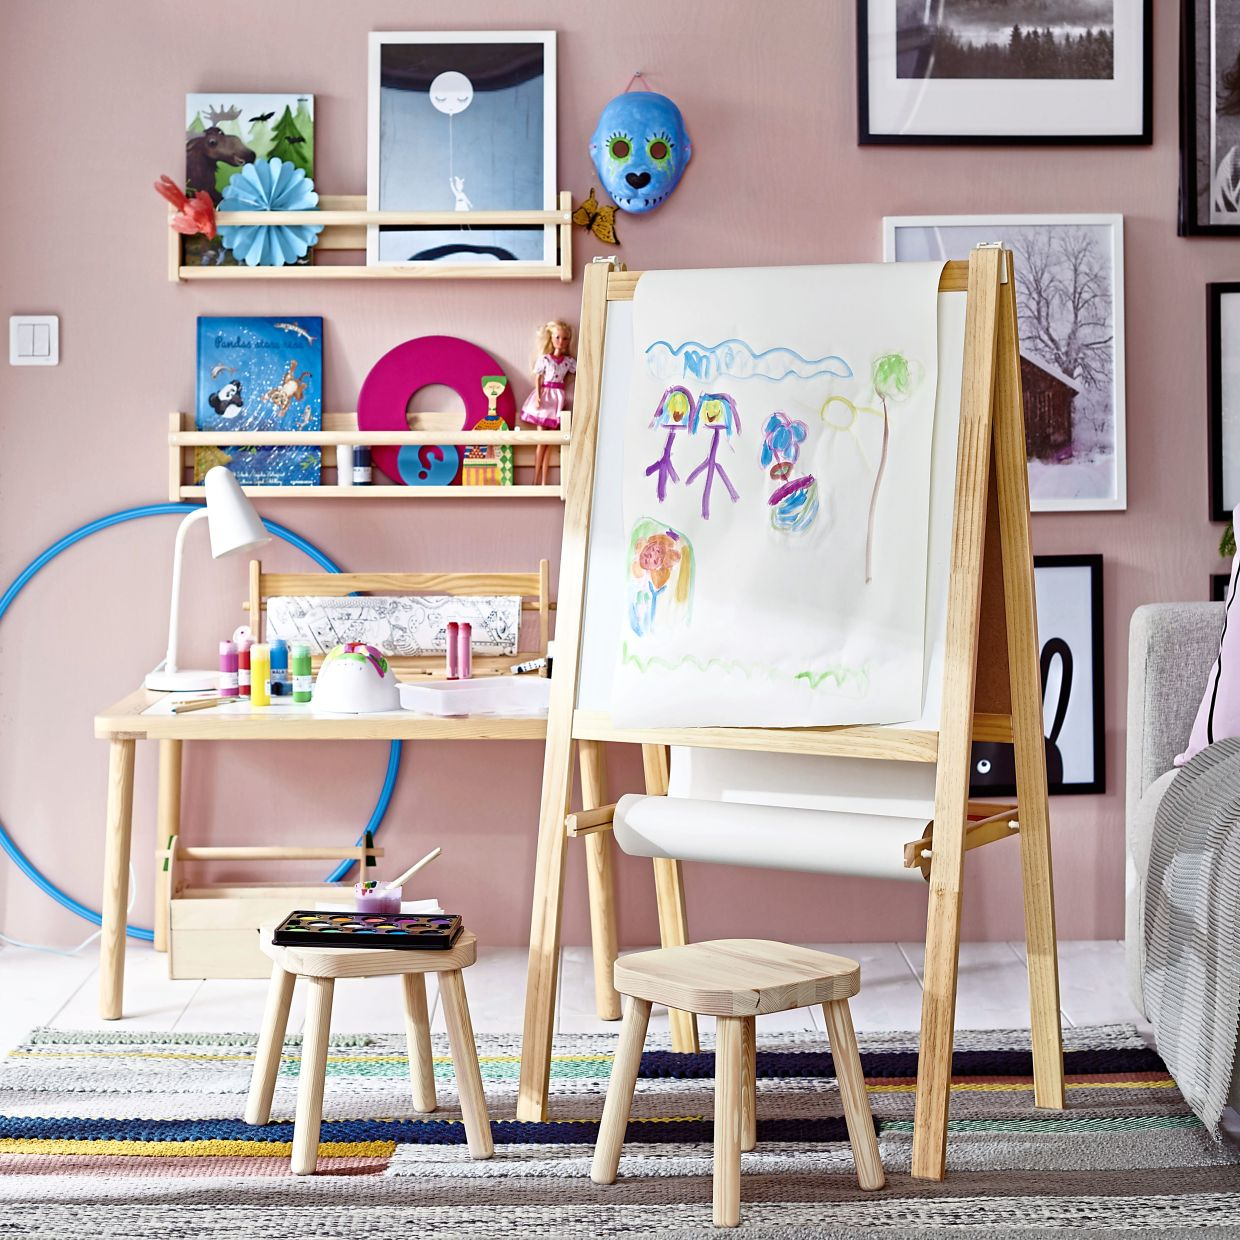 The FLISAT children's table, suitable for ages zero to six, is a practical design for play, arts and crafts, as well as a study table.